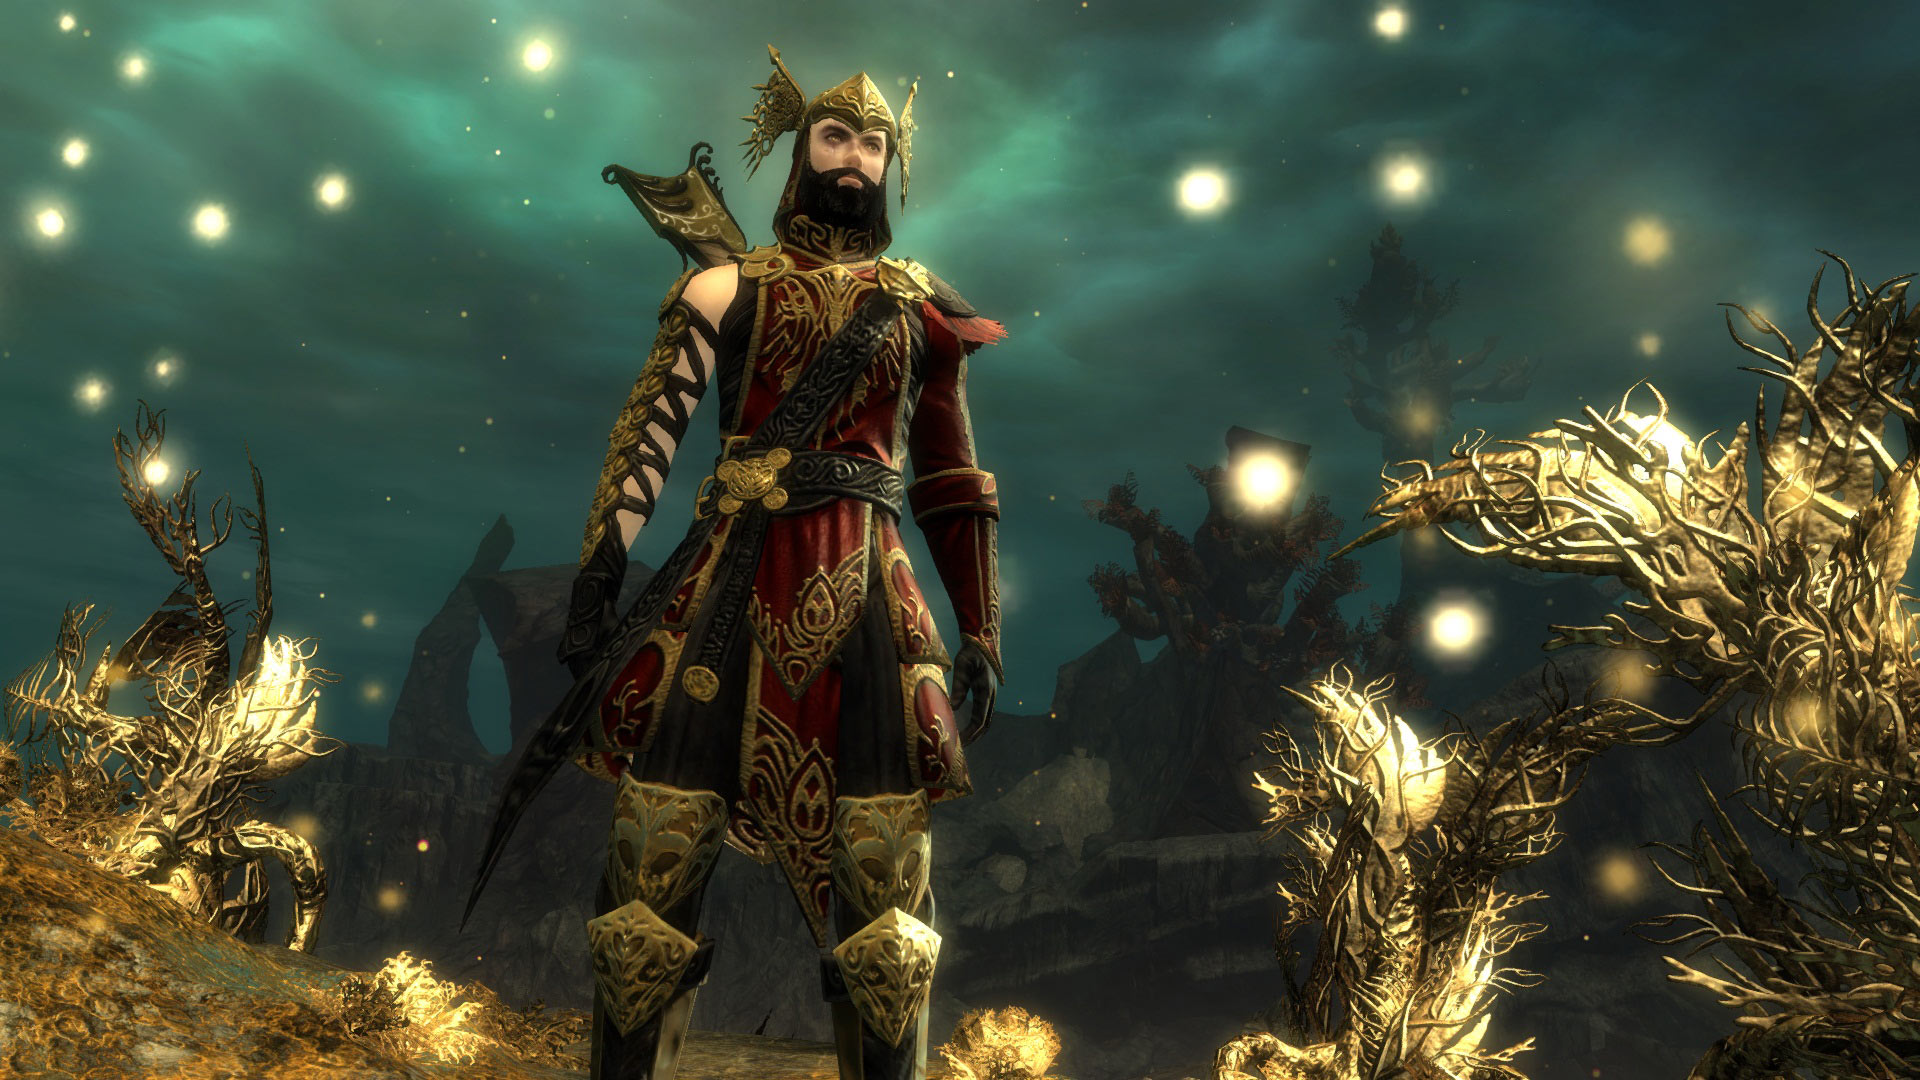 A Very Merry Wintersday Guildwars2 Com